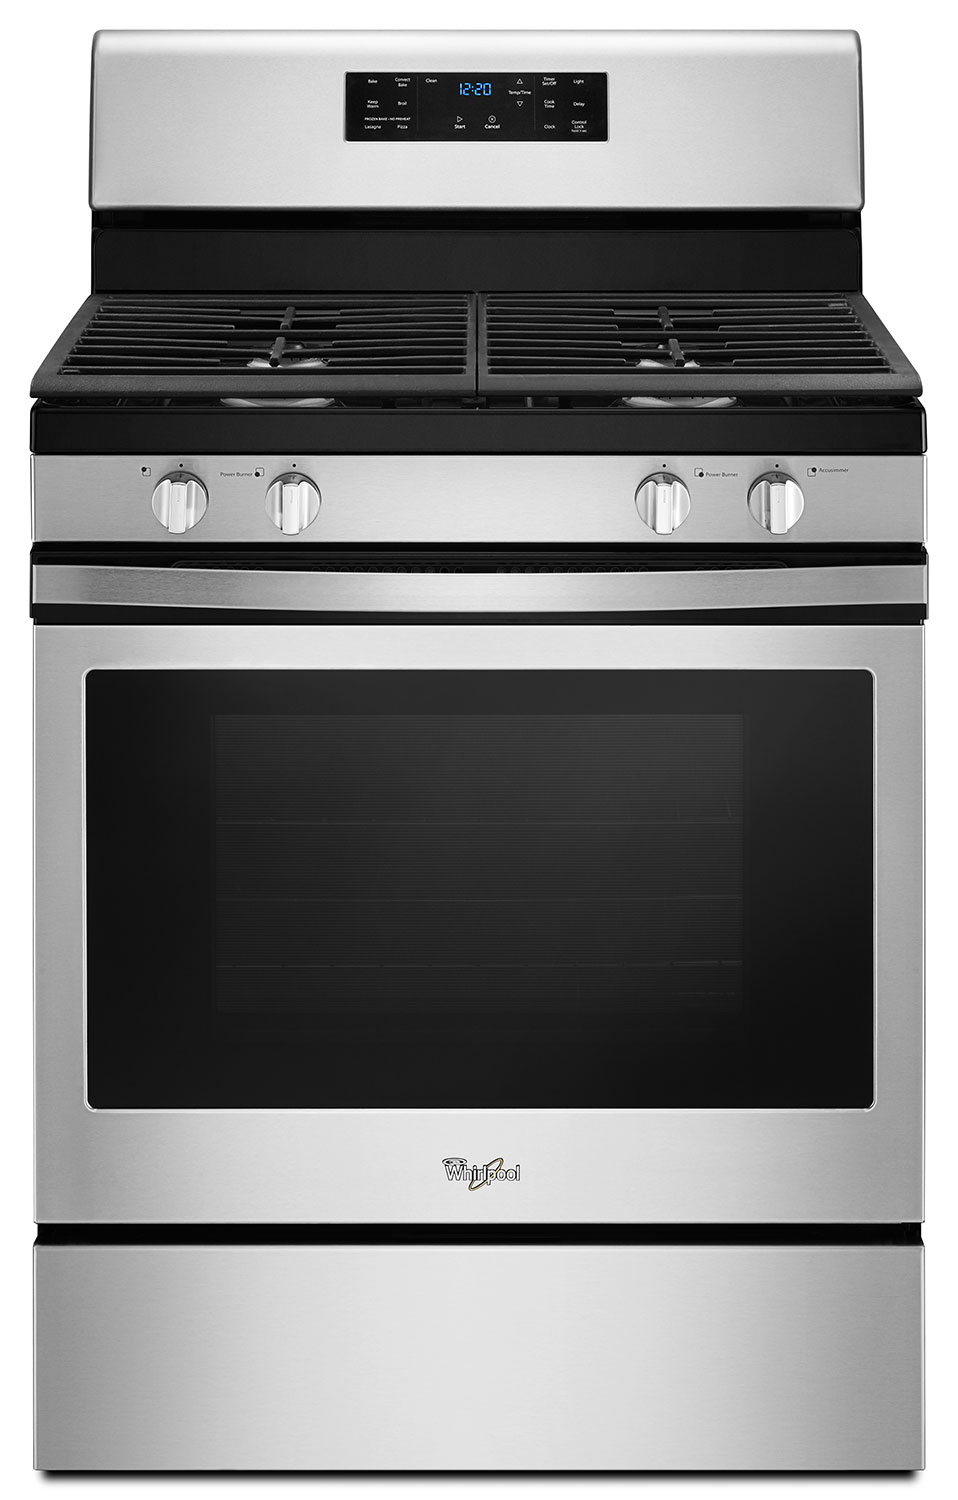 Whirlpool® 5.0 Cu. Ft. Front Control Gas Range with Fan Convection Cooking